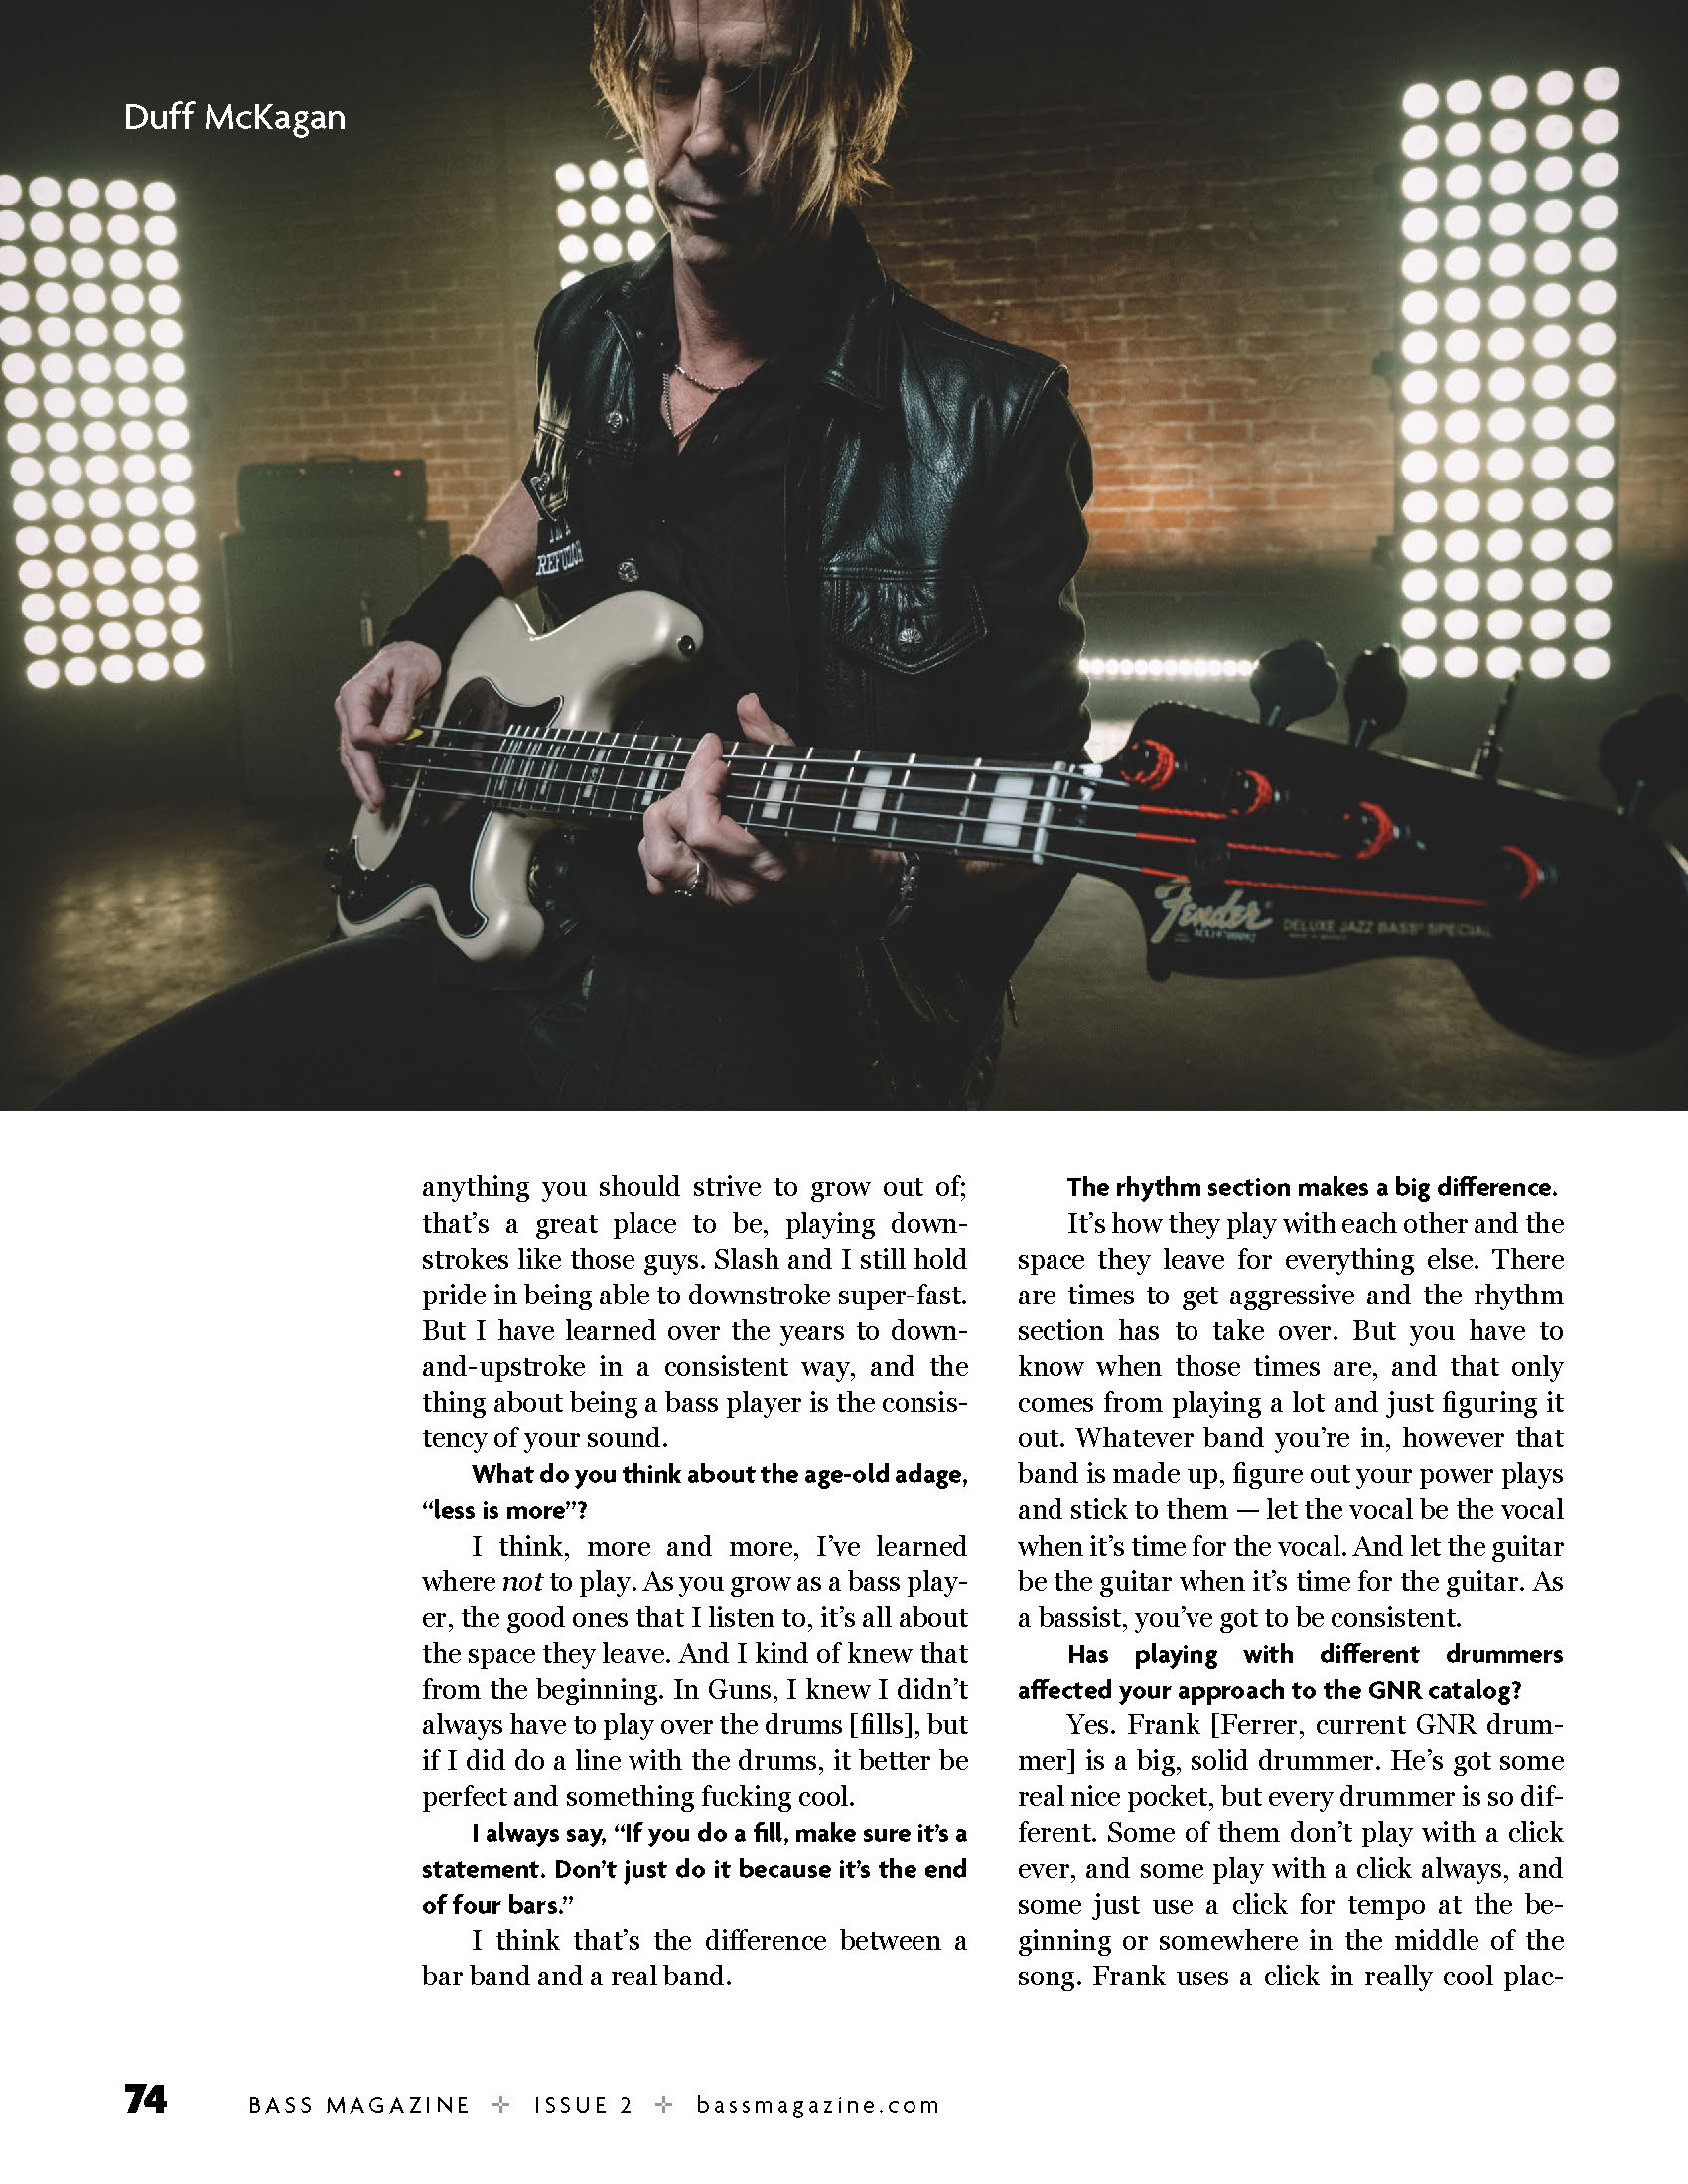 2019.05.15 - Bass Magazine - Interview with Duff 2019_033